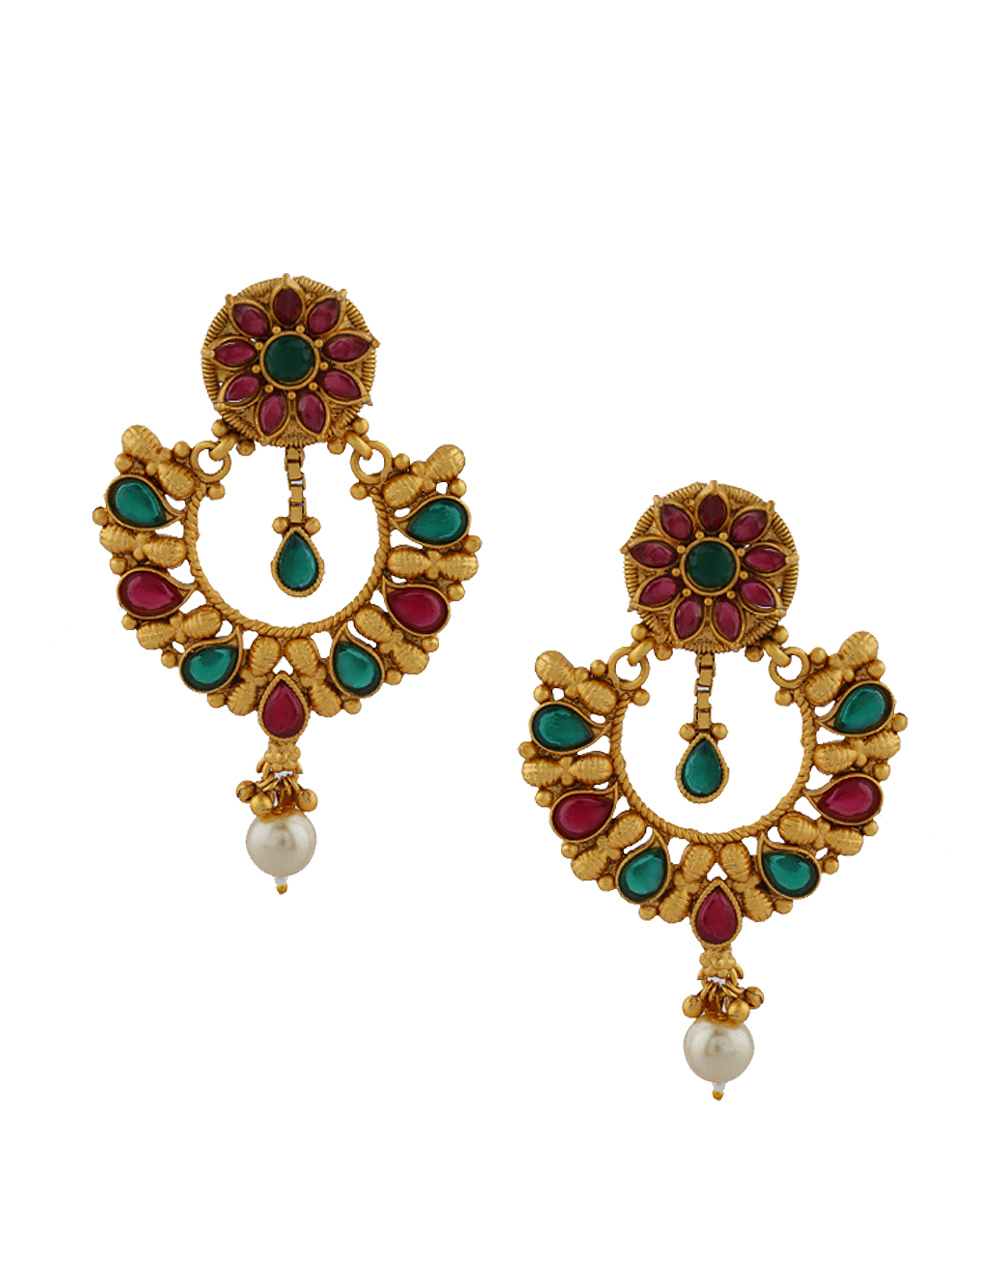 Golden Finish With Pearl Breads Droplet With Ruby And Green Classy Earrings Pair